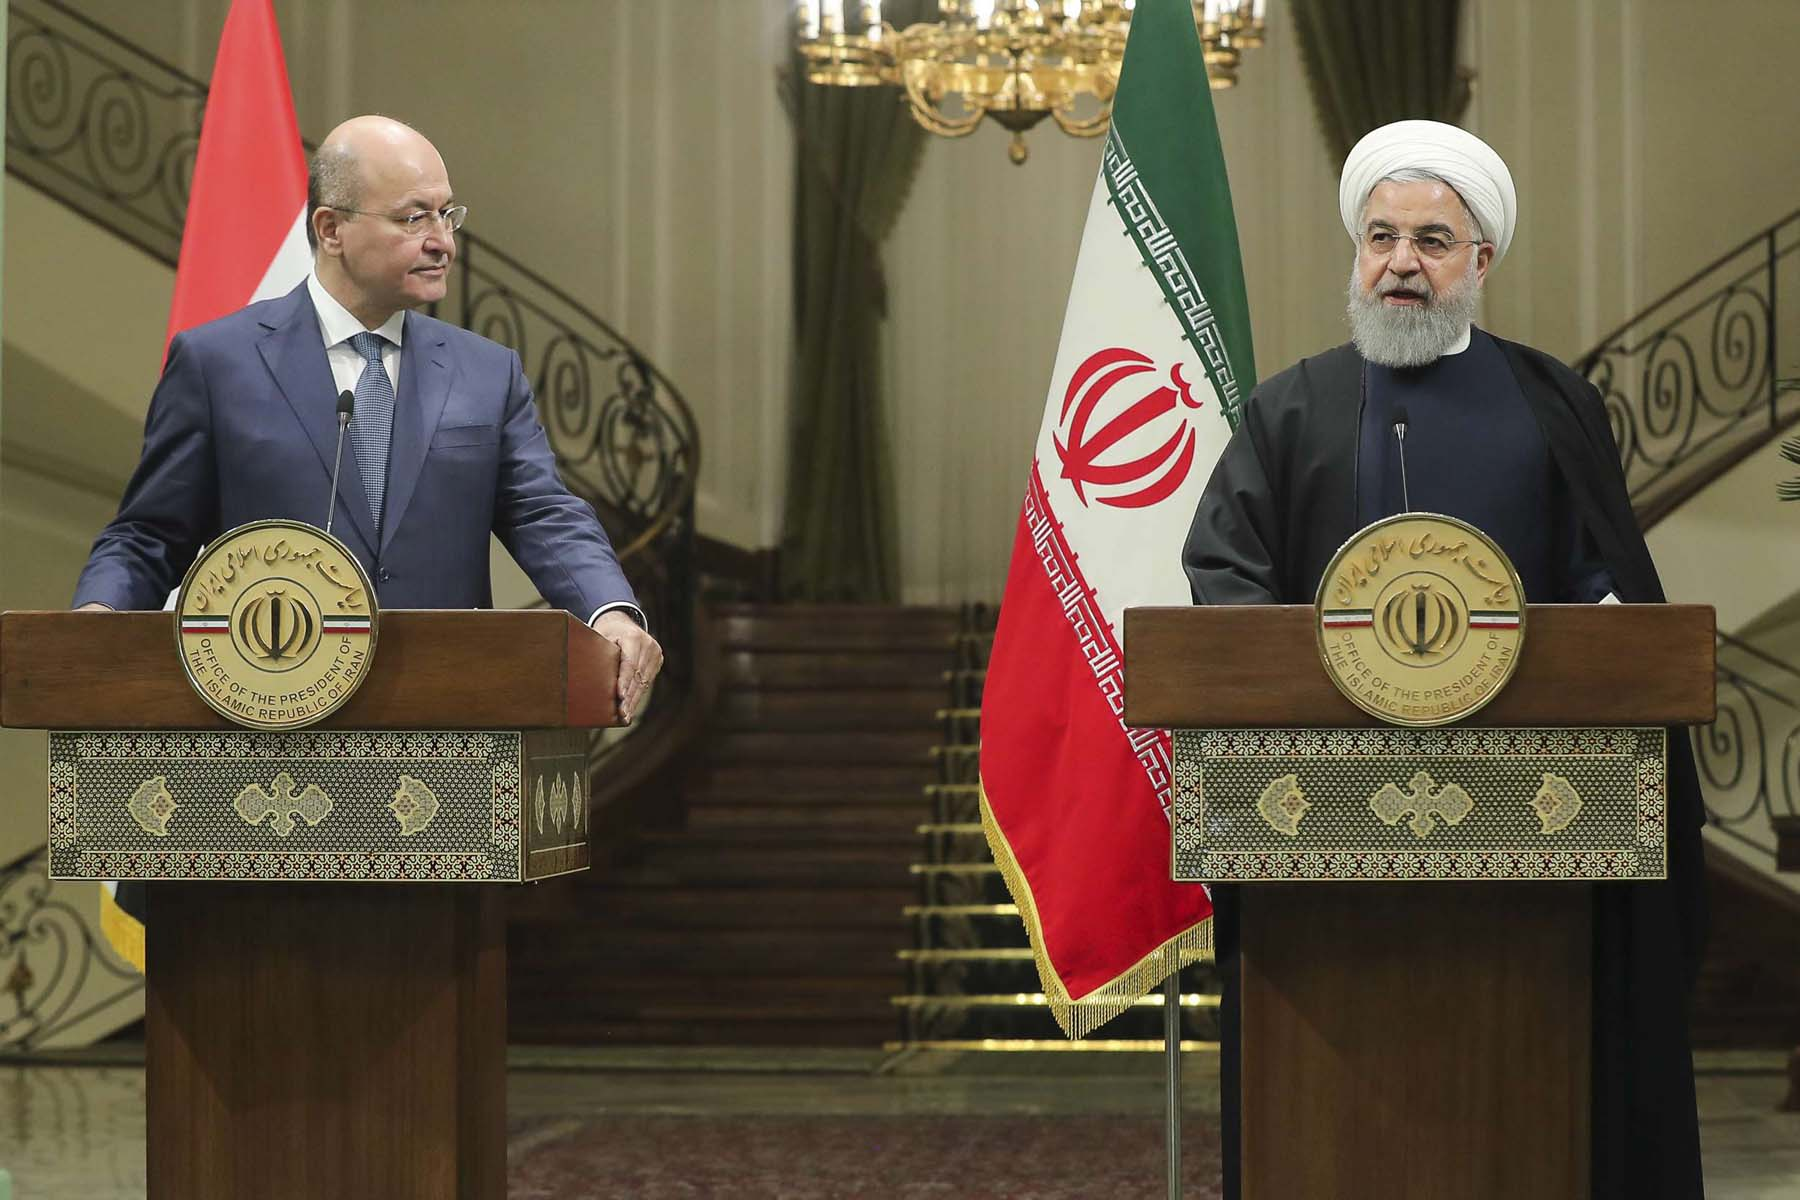 Iranian President Hassan Rohani (R) speaks during a joint news conference with his Iraqi counterpart Barham Salih at the Saadabad Palace in Tehran, on November 17. (Iranian Presidency)